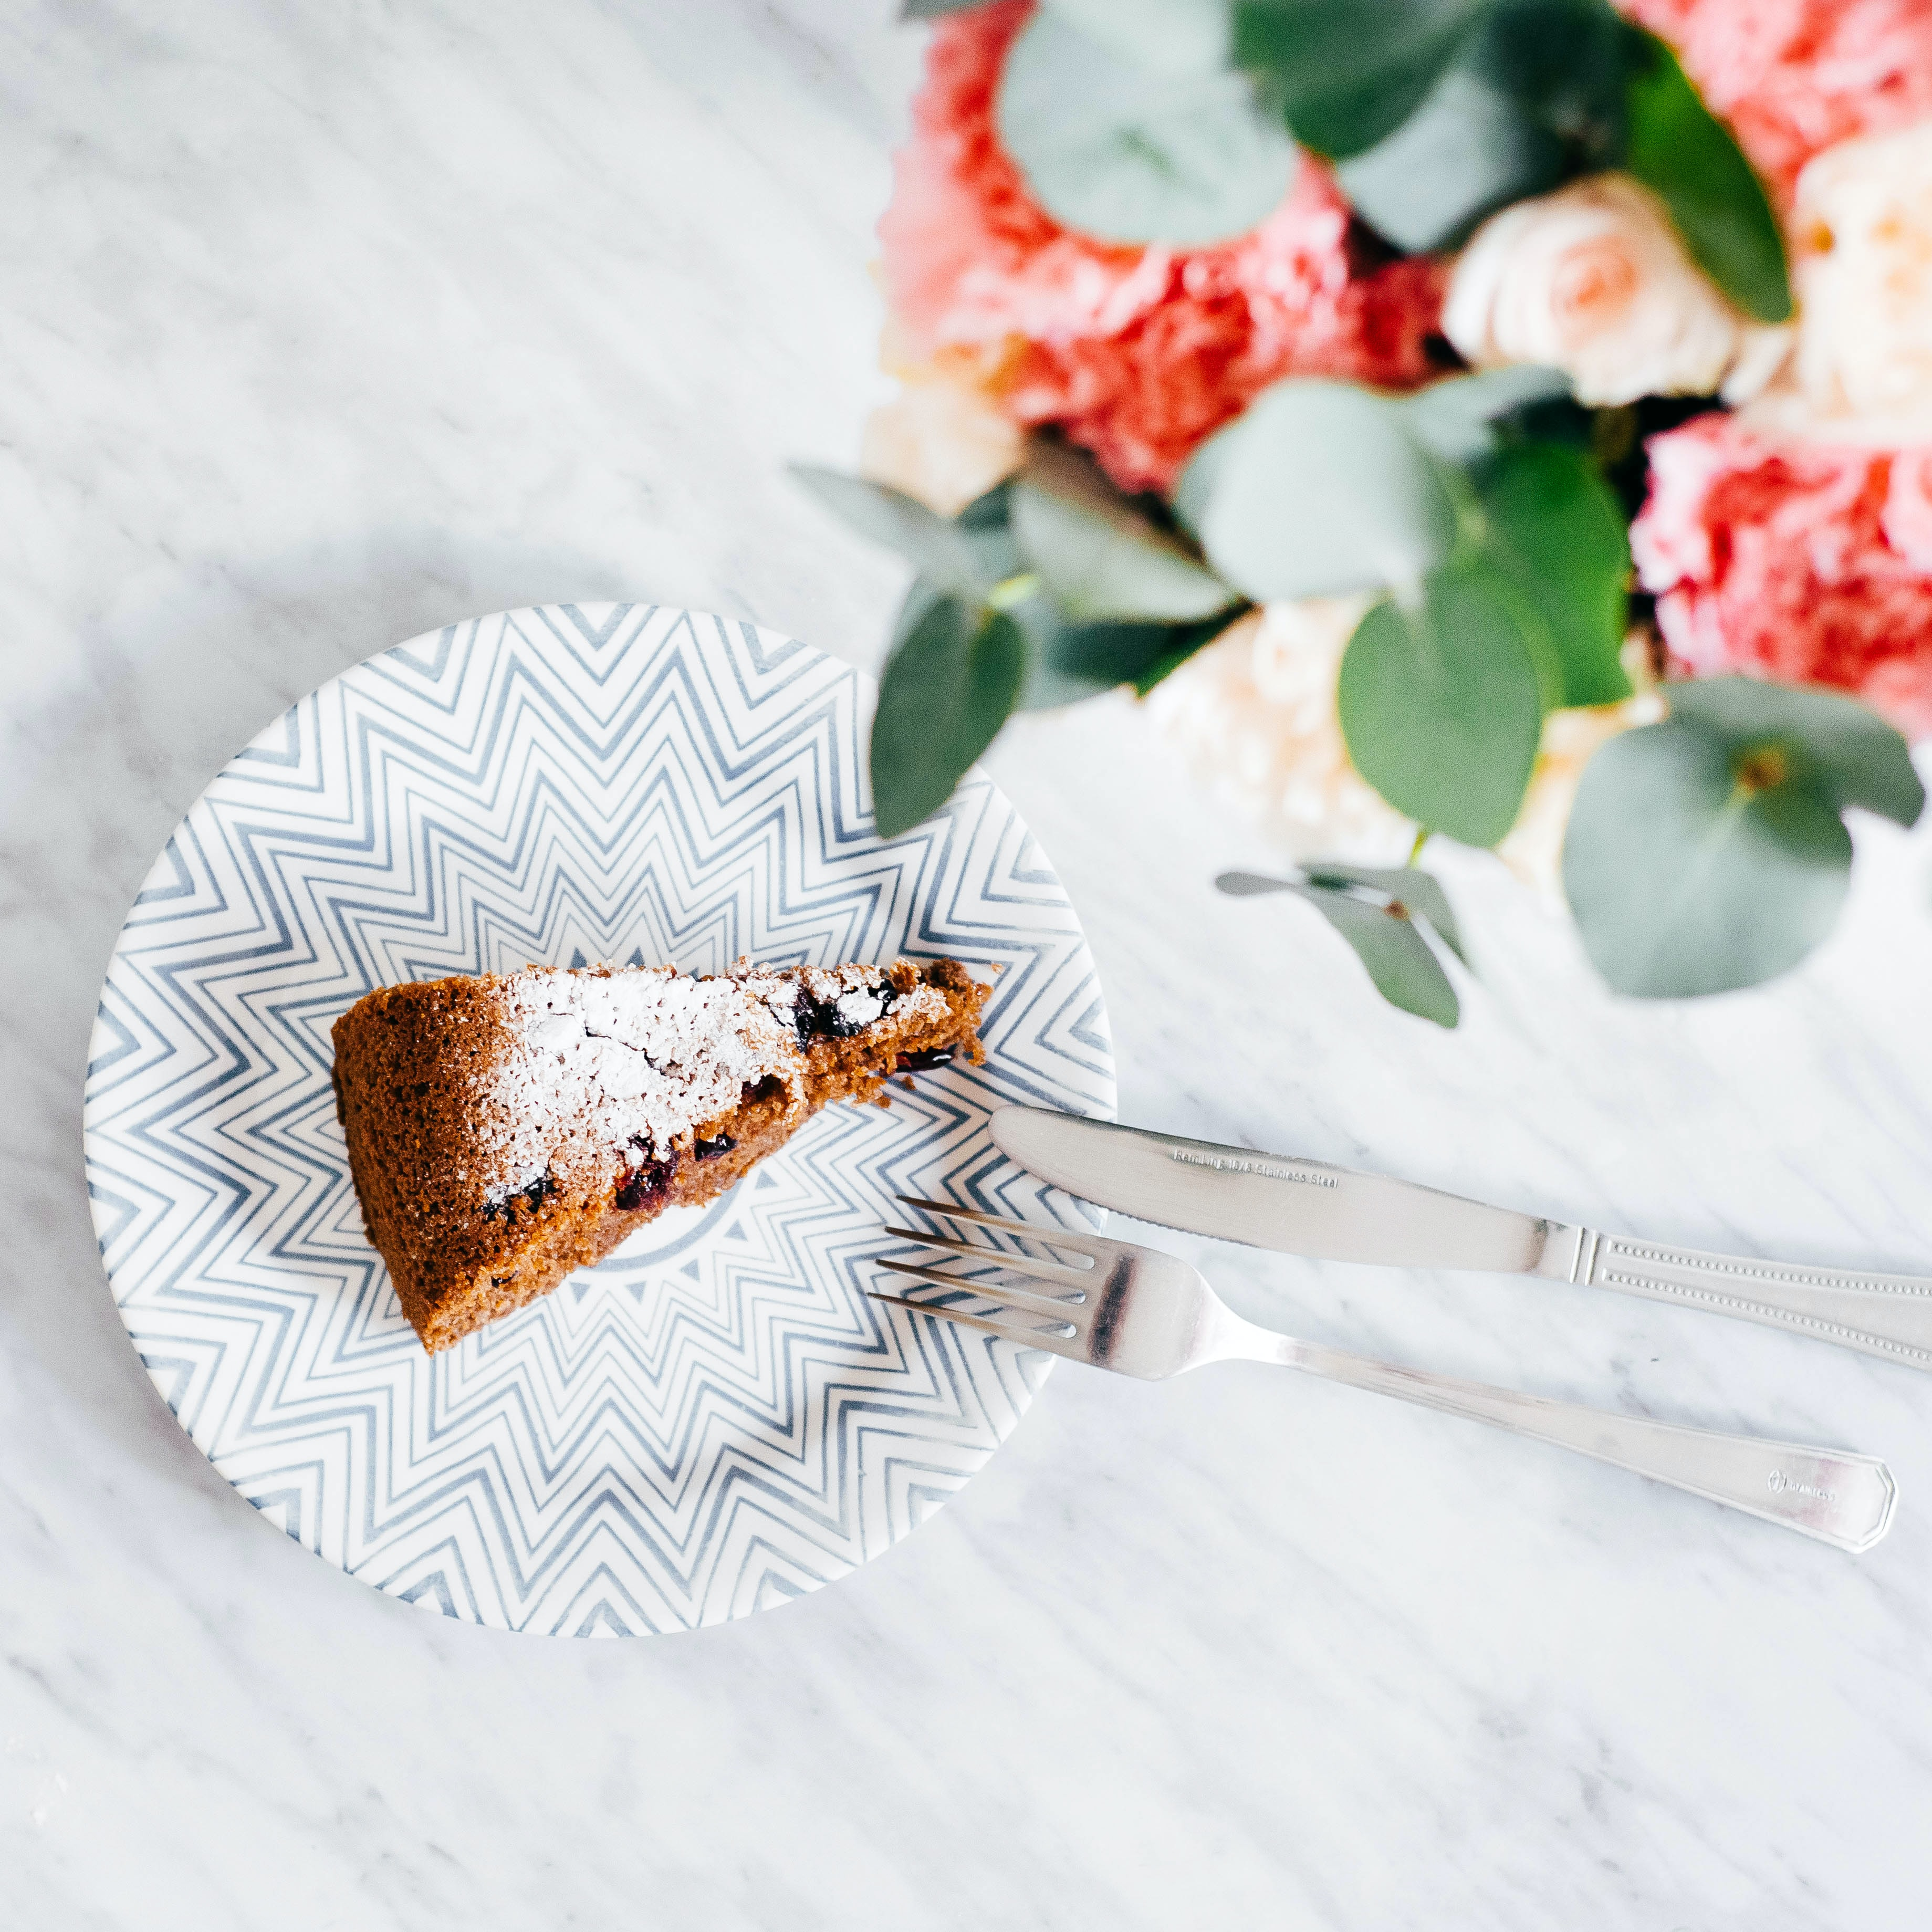 An overhead shot of a slice of cake on a plate next to a floral bouquet